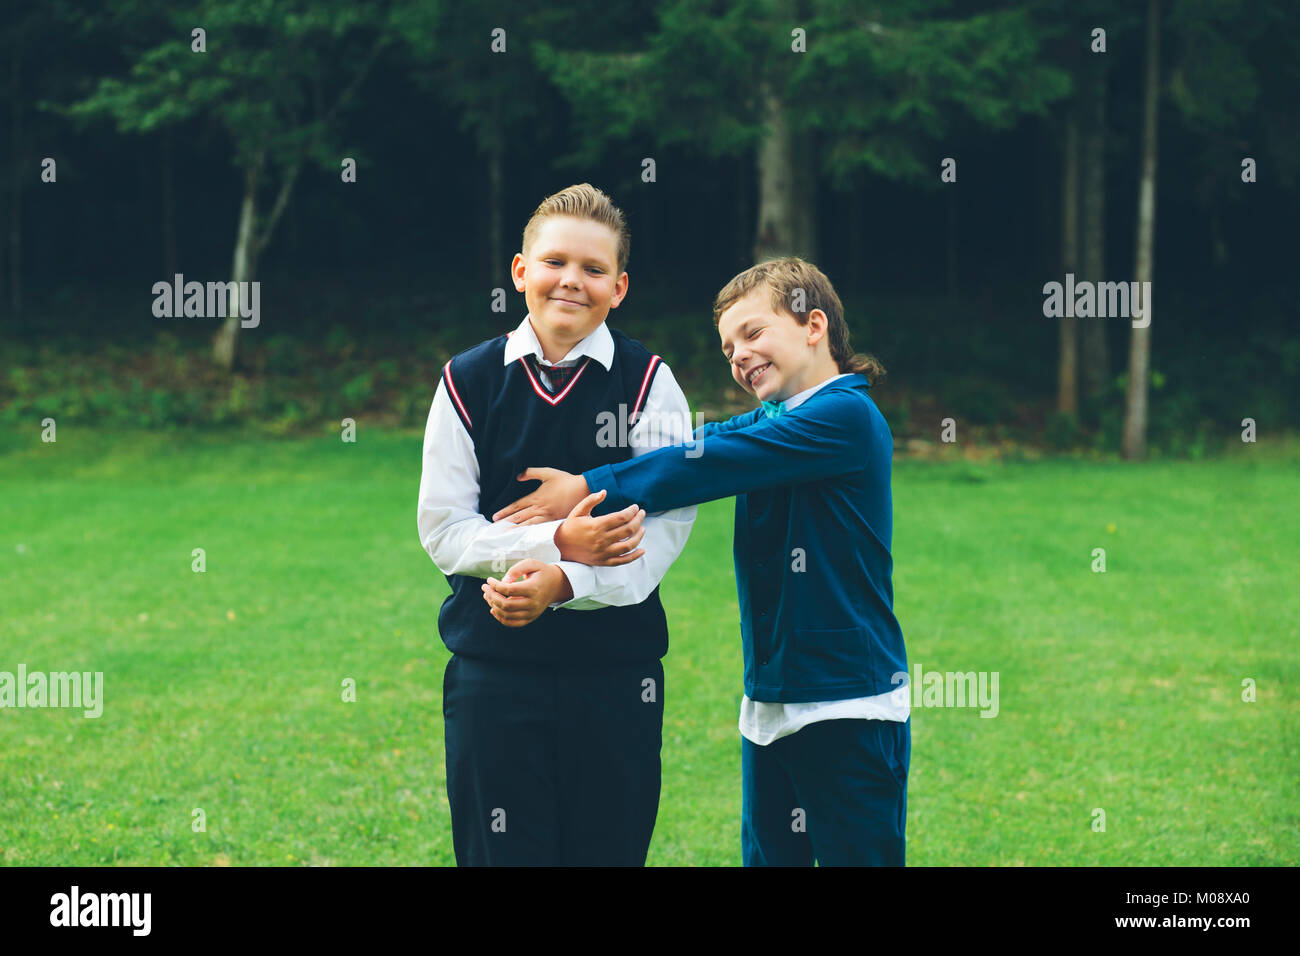 Two boys, brothers in formalwear are tugging each other, having fun in front of a forest on a lawn in summer. - Stock Image